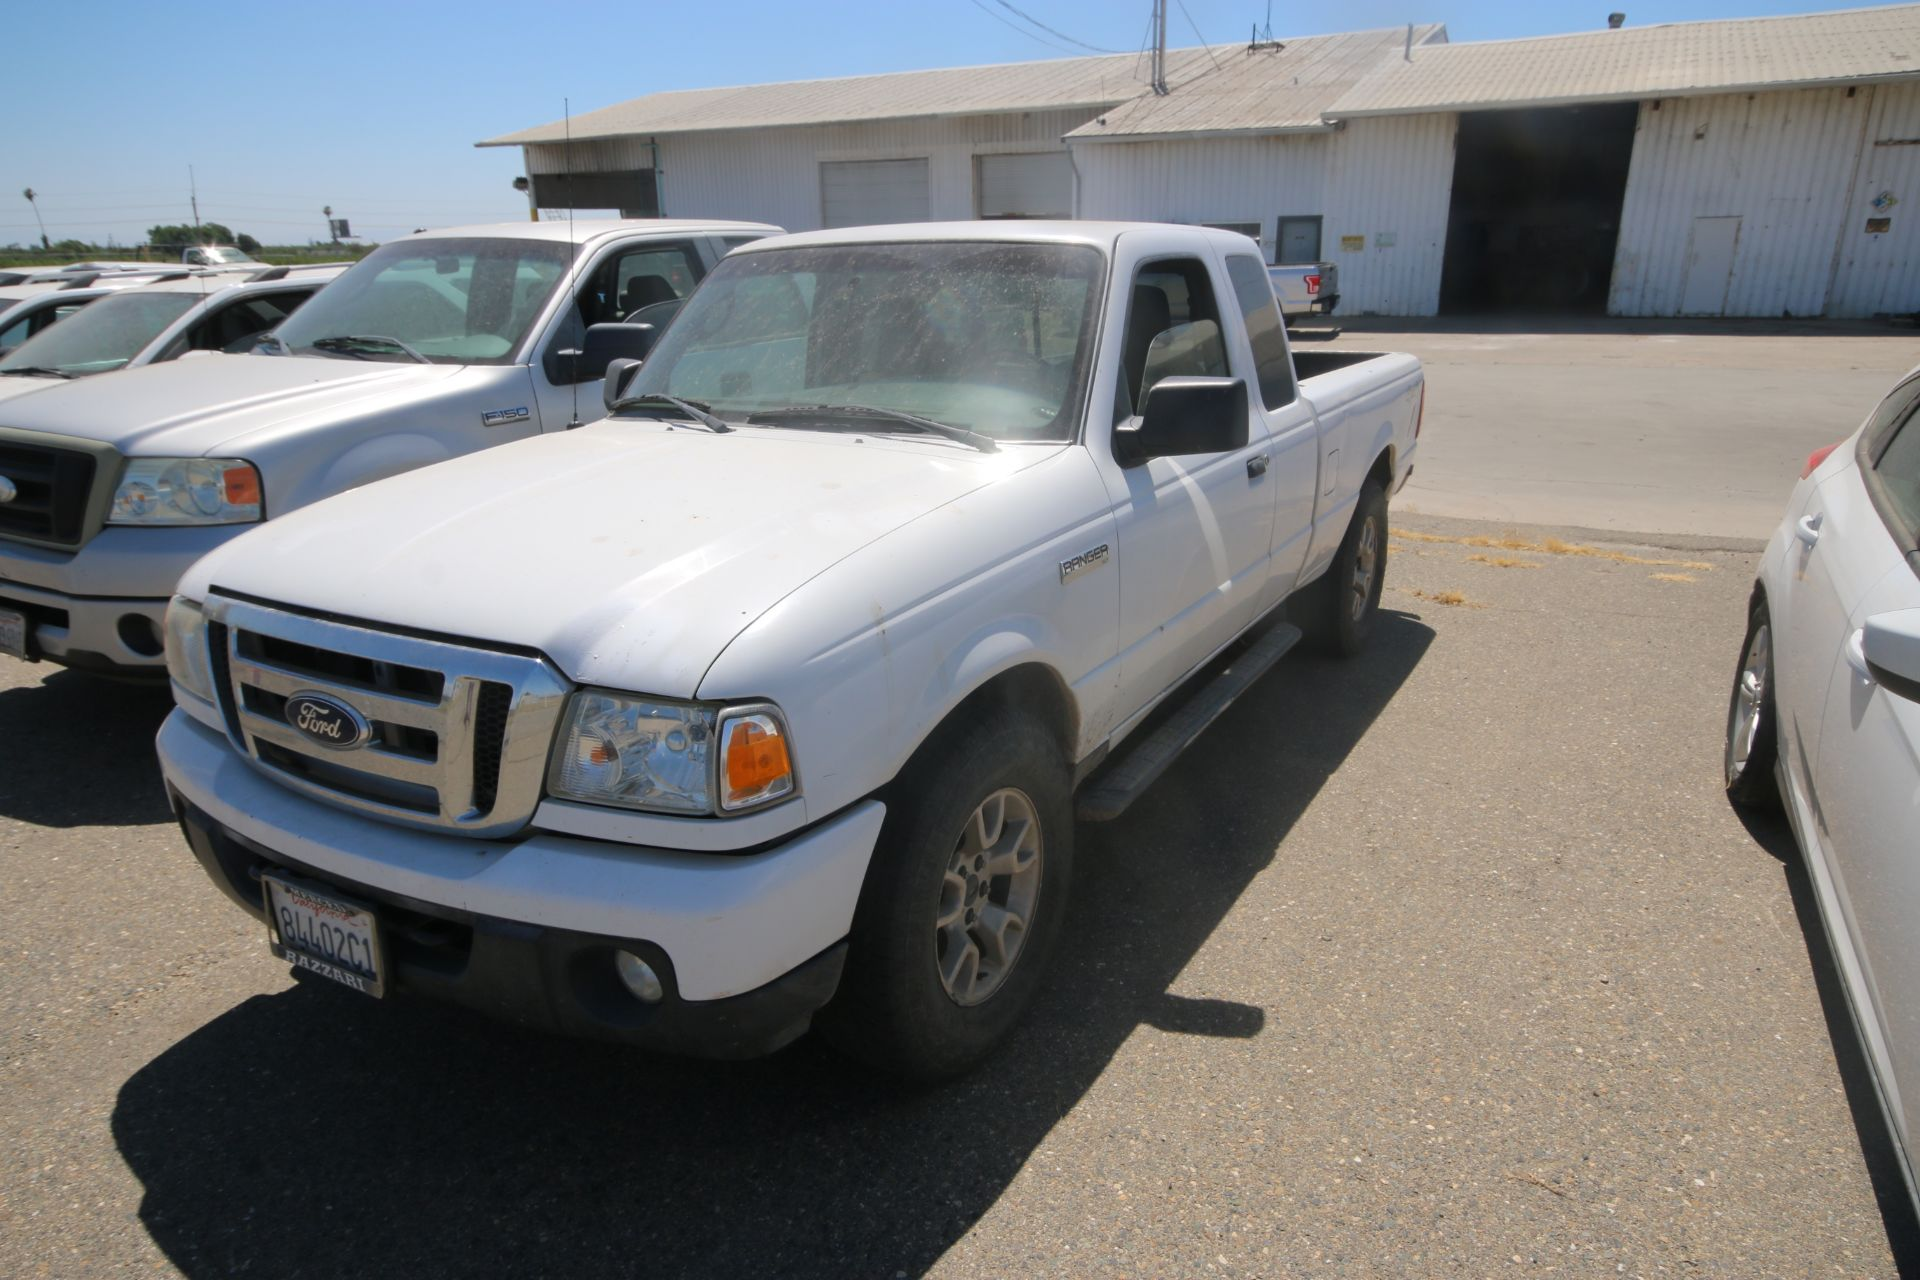 2011 White Ford Ranger Pick Up Truck, VIN #: 1FTLR4FE8BPA37482, with 160,443 Miles, Started Up as of